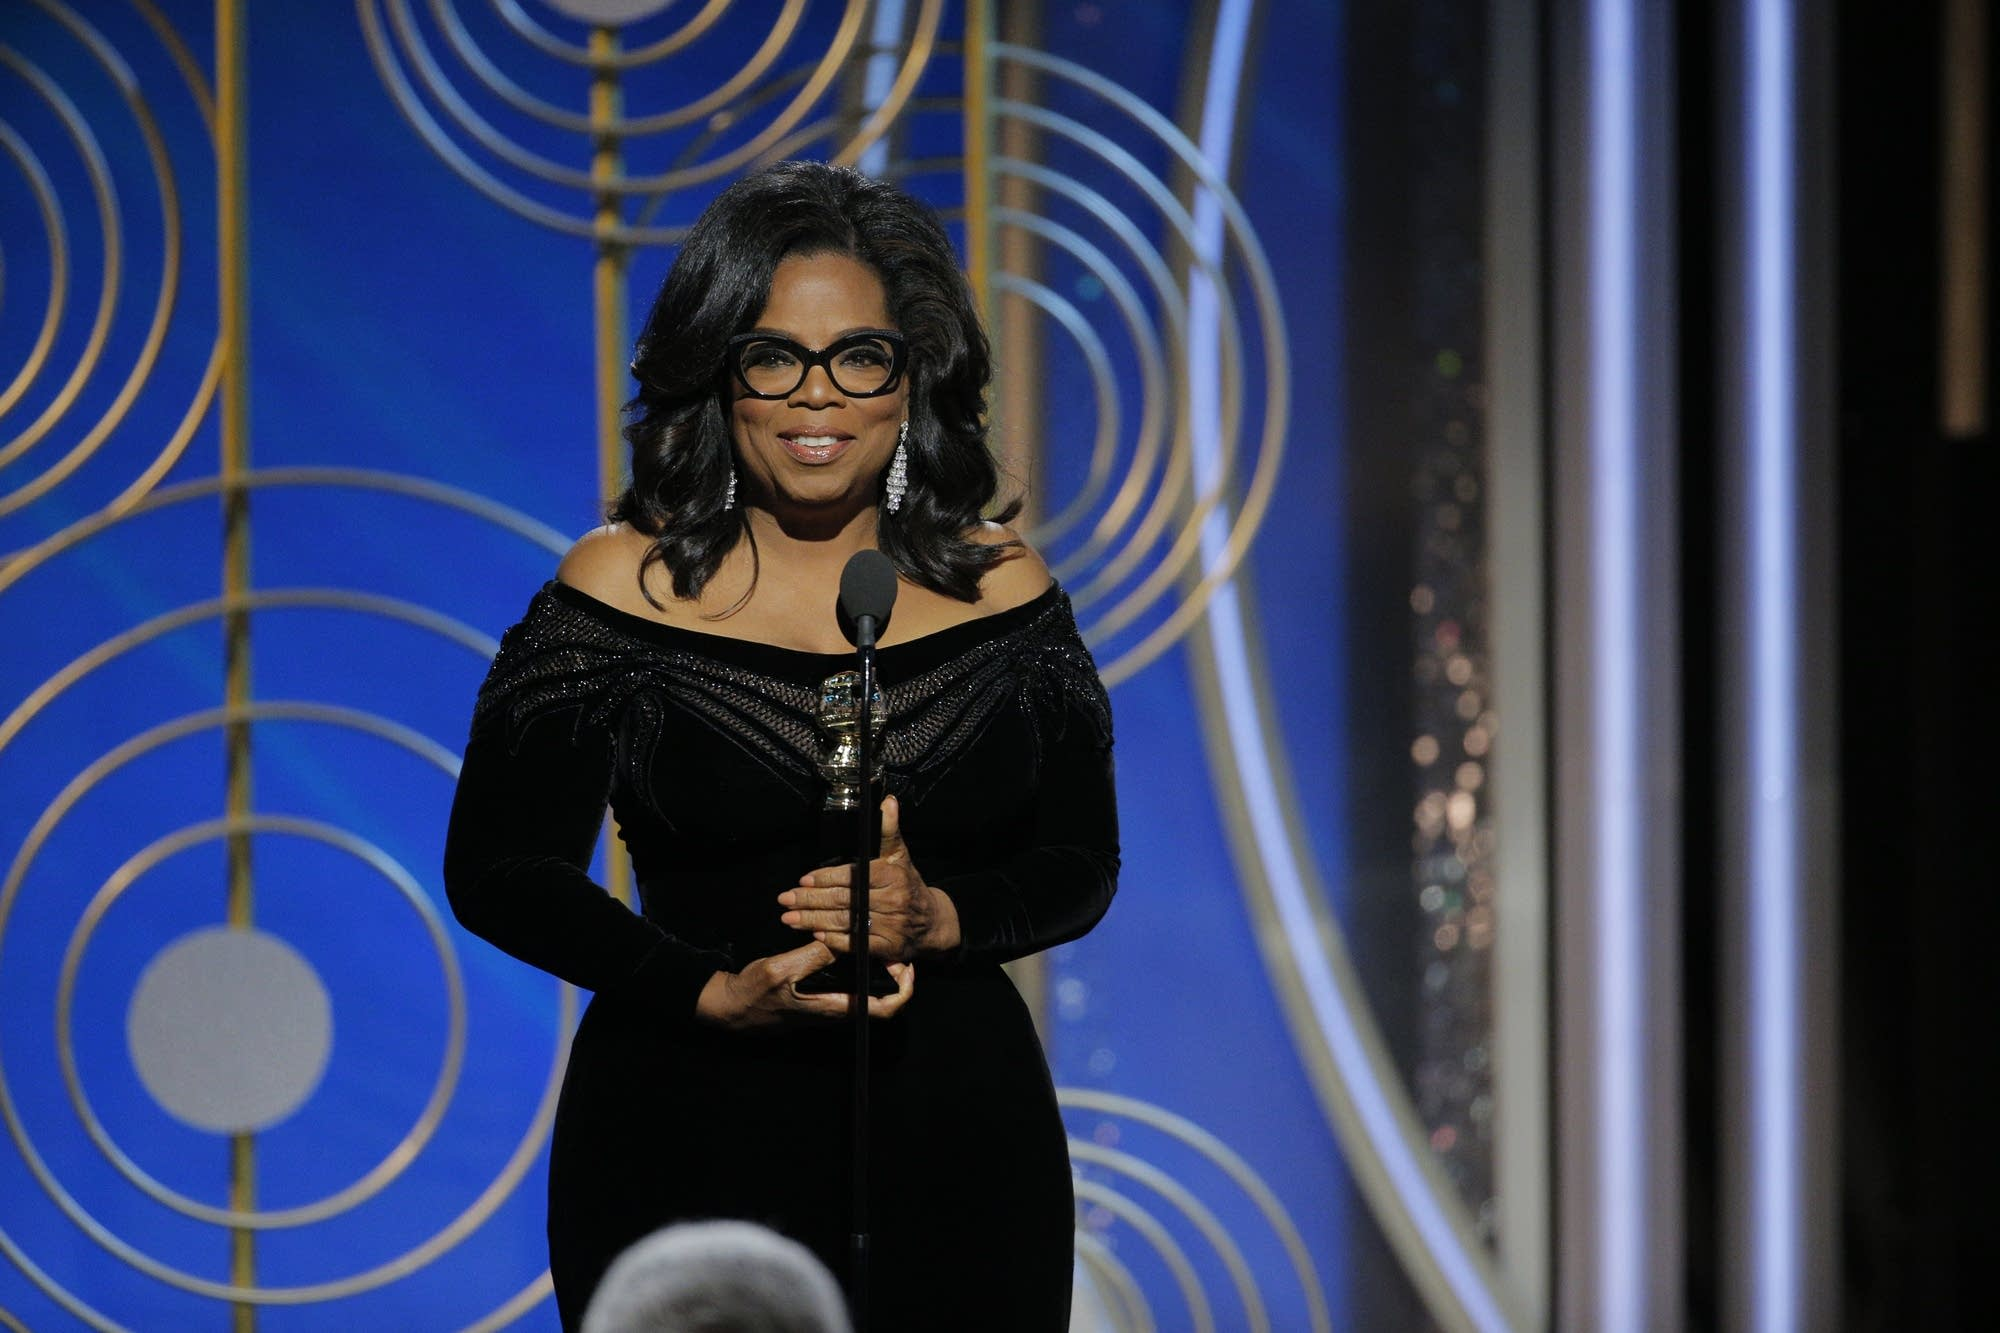 Voters Currently Don't Want Oprah to Run for President